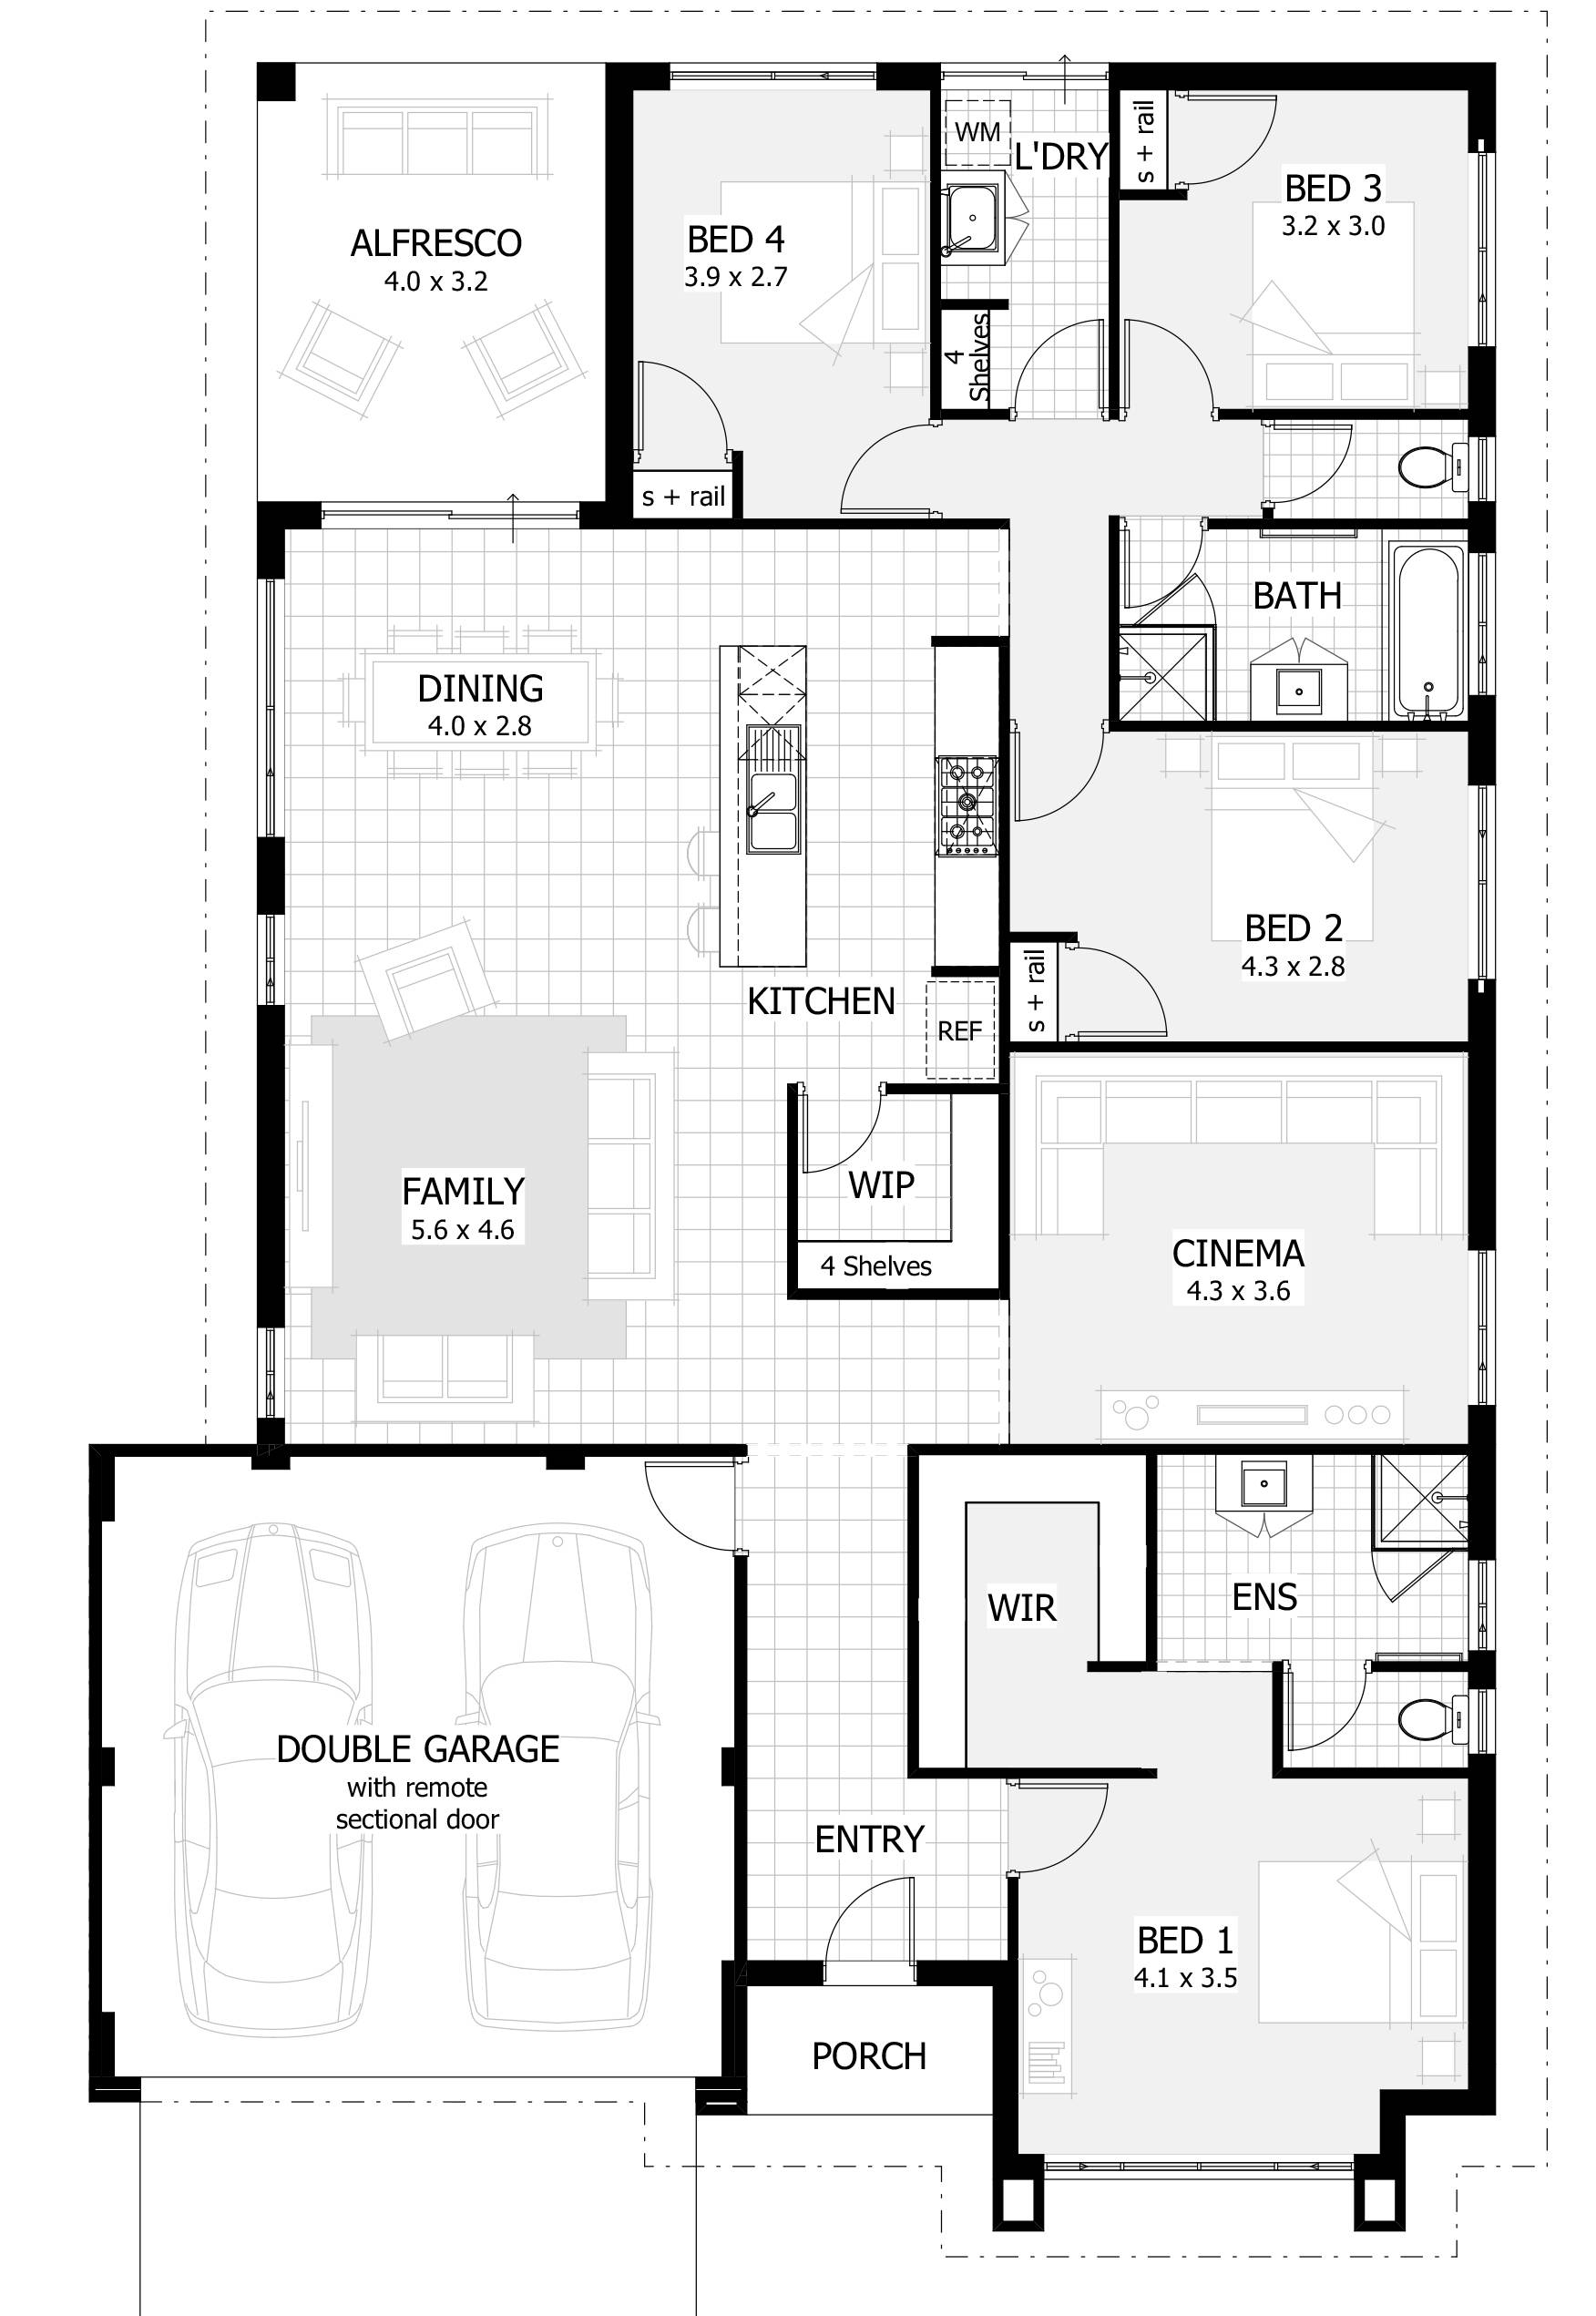 Bedroom Story House Plans Australia